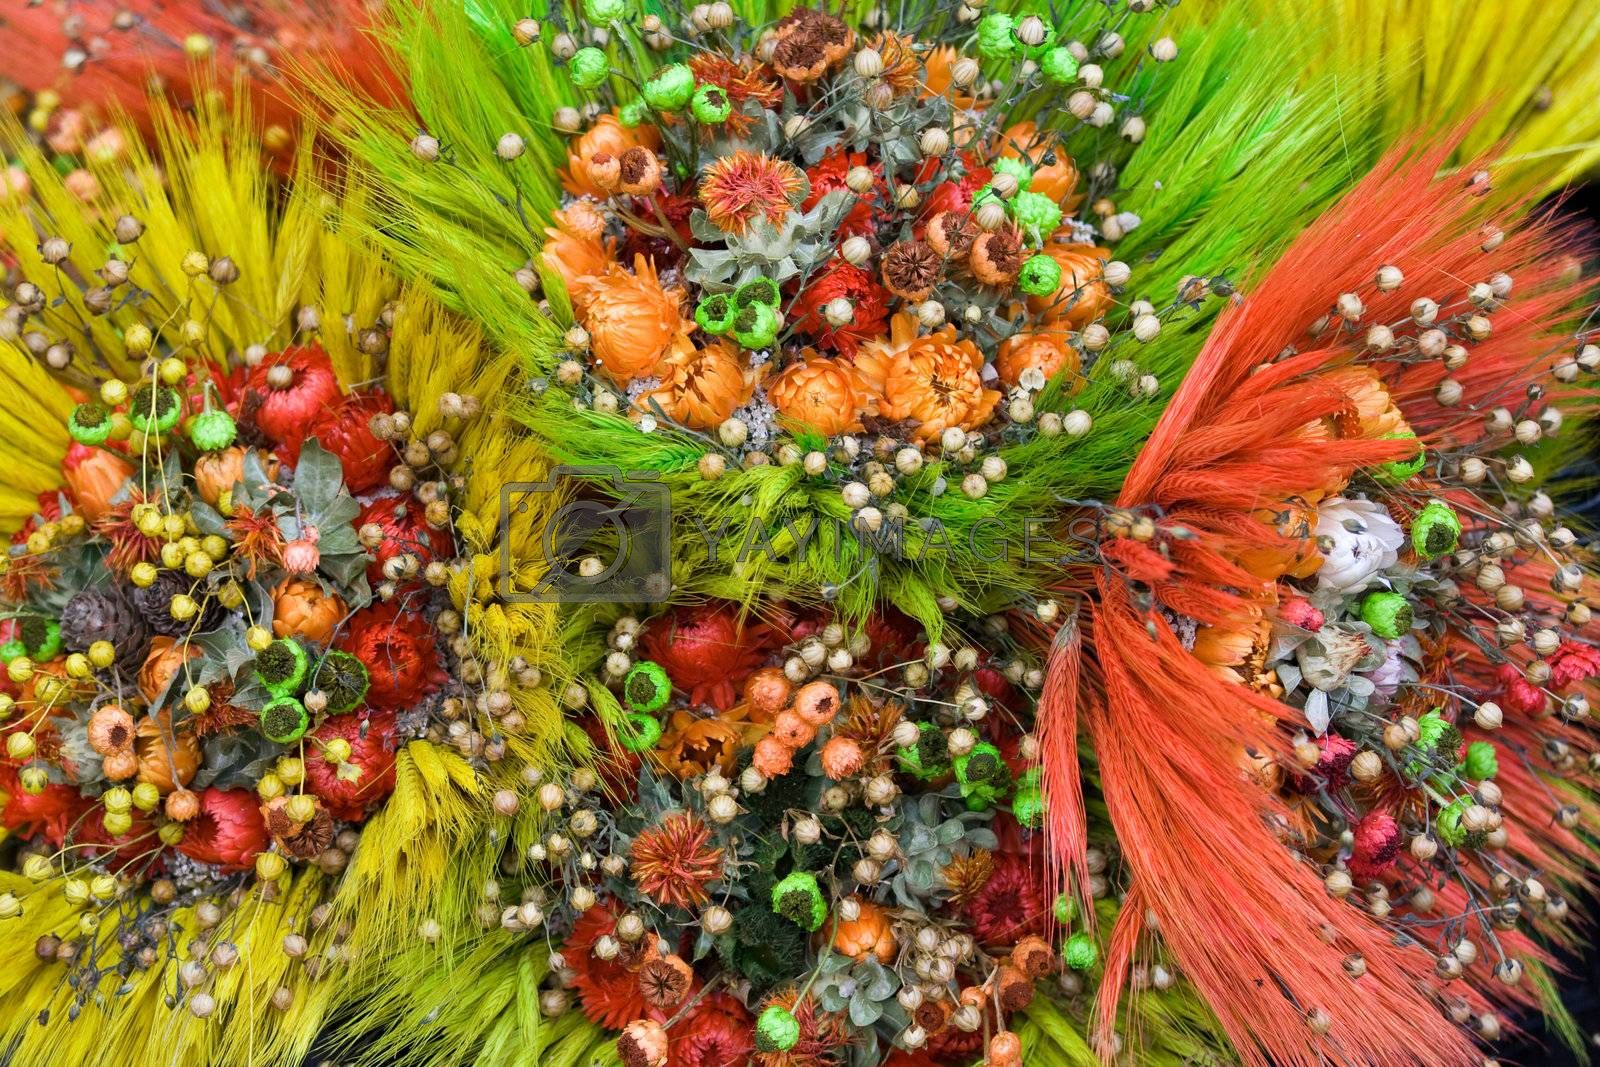 Ornamental Bunch of dried wild flowers and cereals by SergeyAK